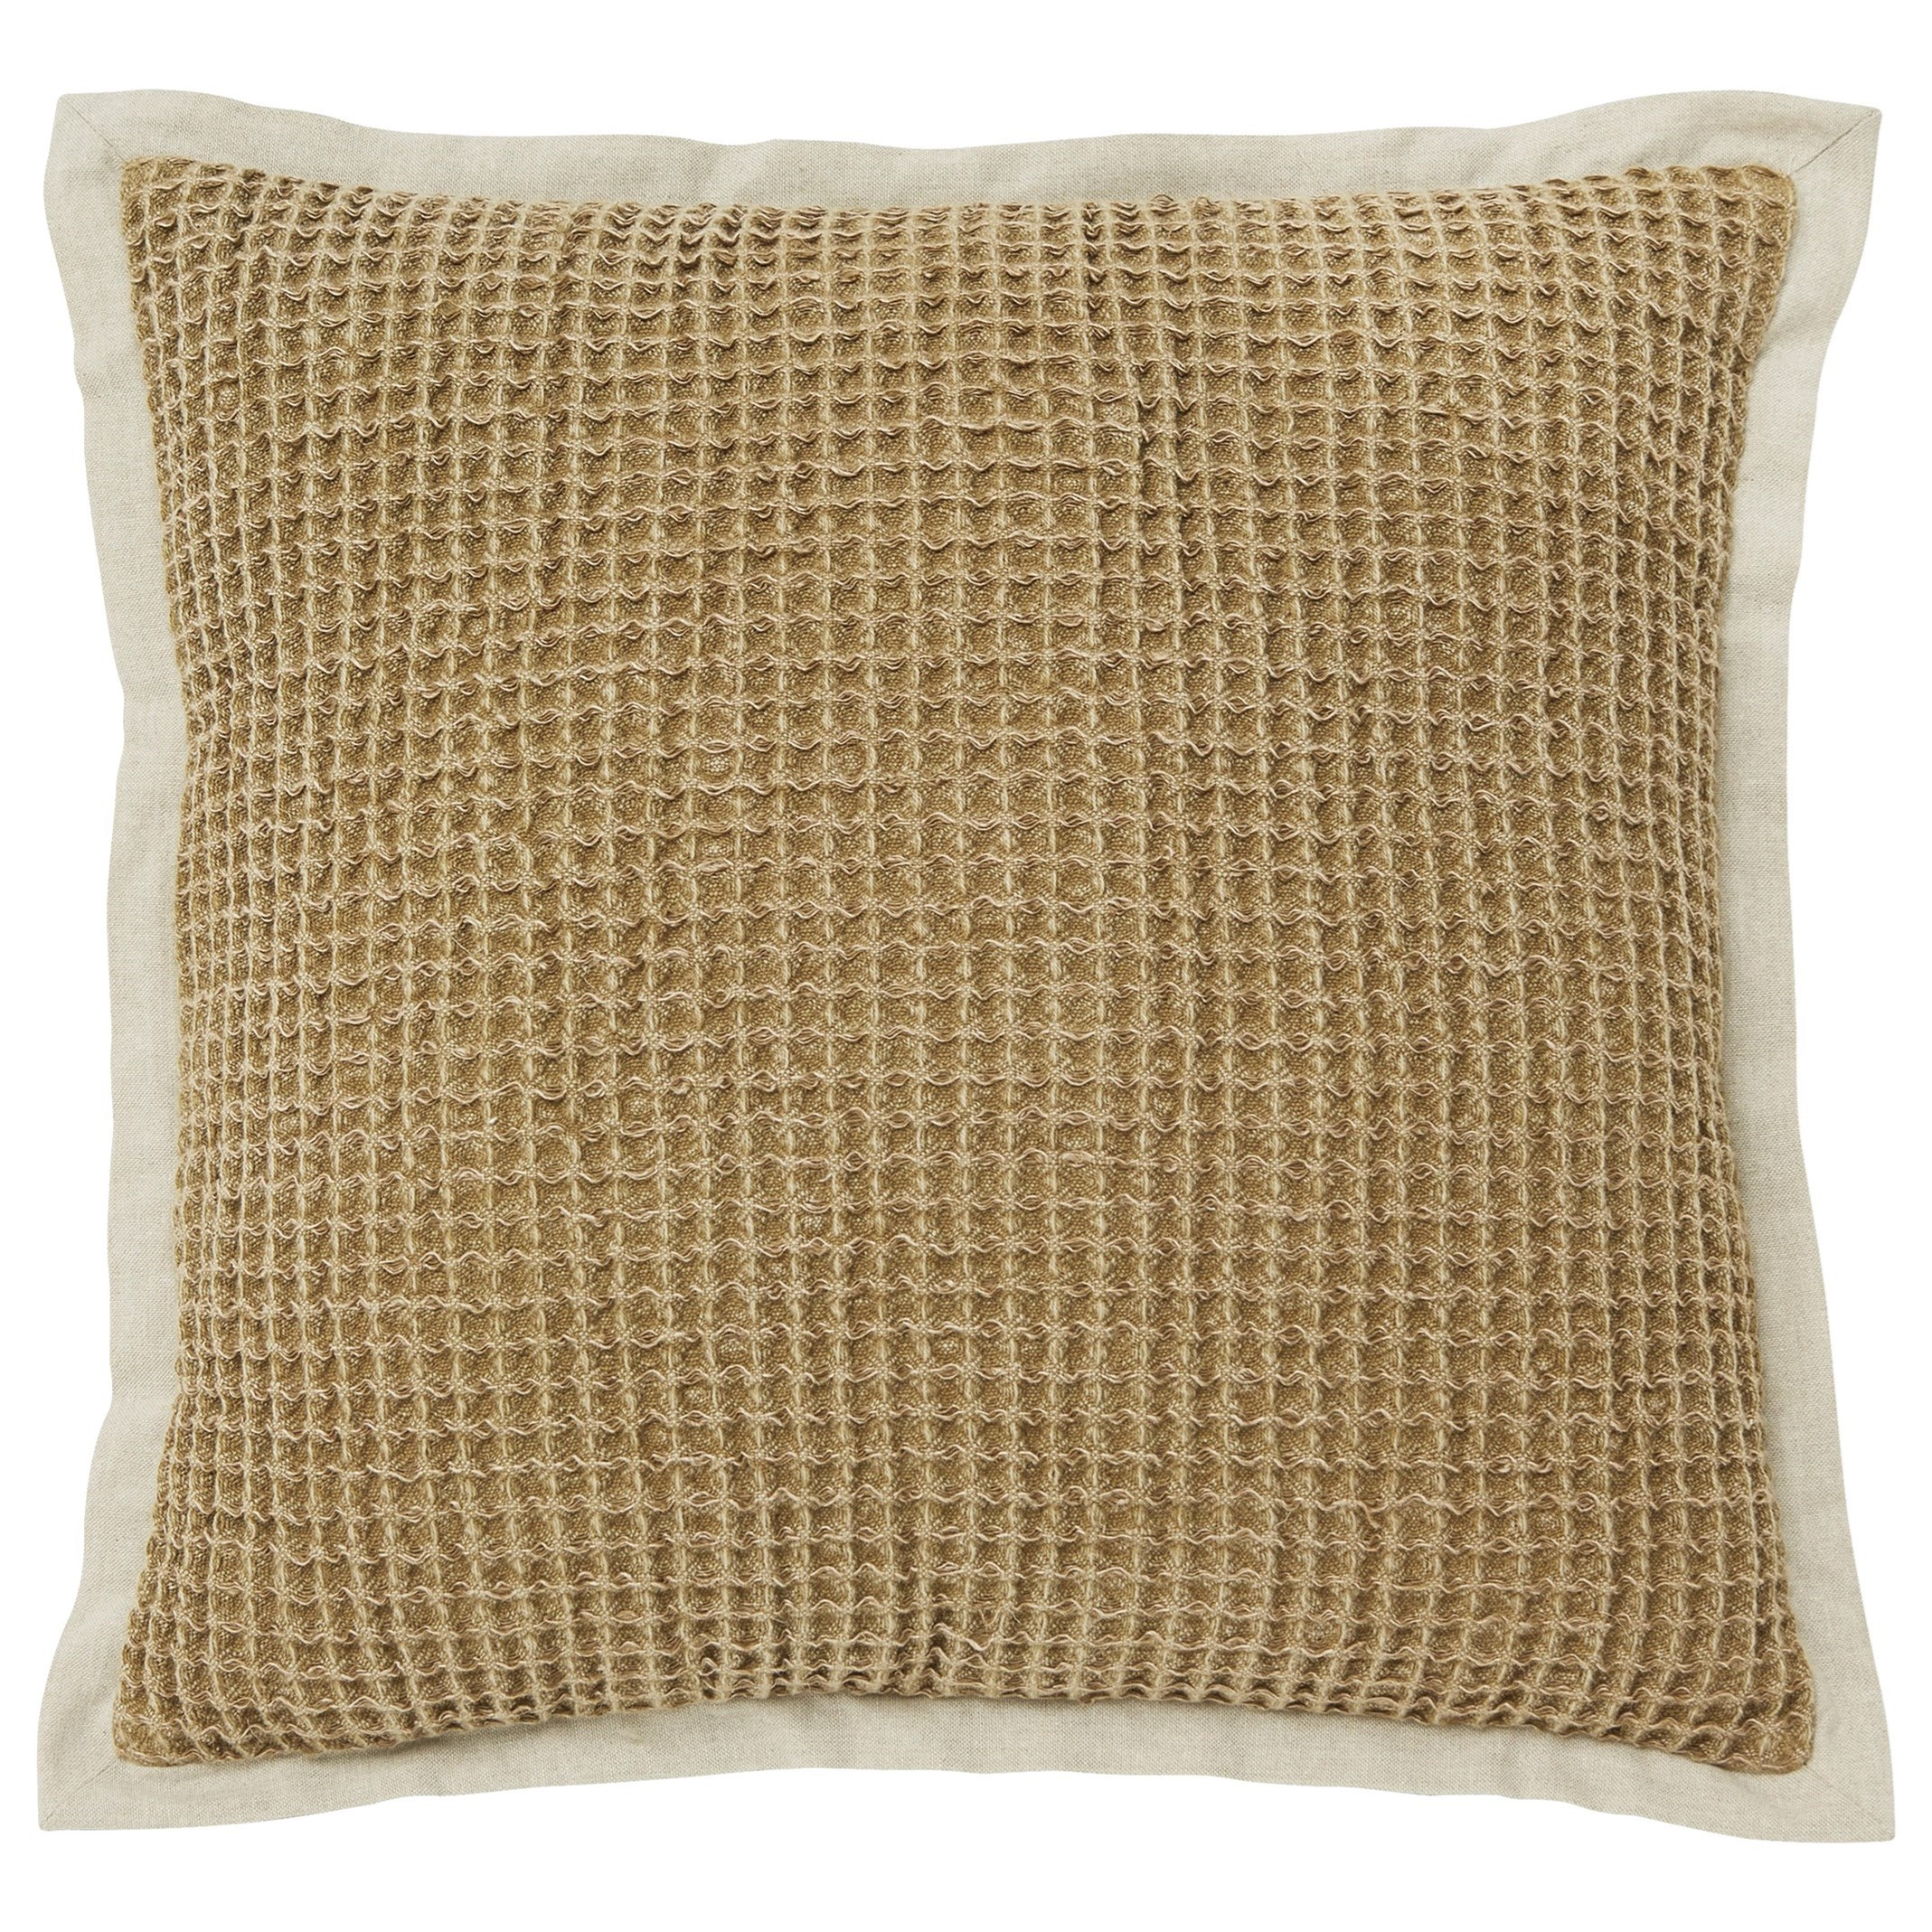 Signature Design by Ashley Pillows Wrexyville - Gold Pillow - Item Number: A1000358P